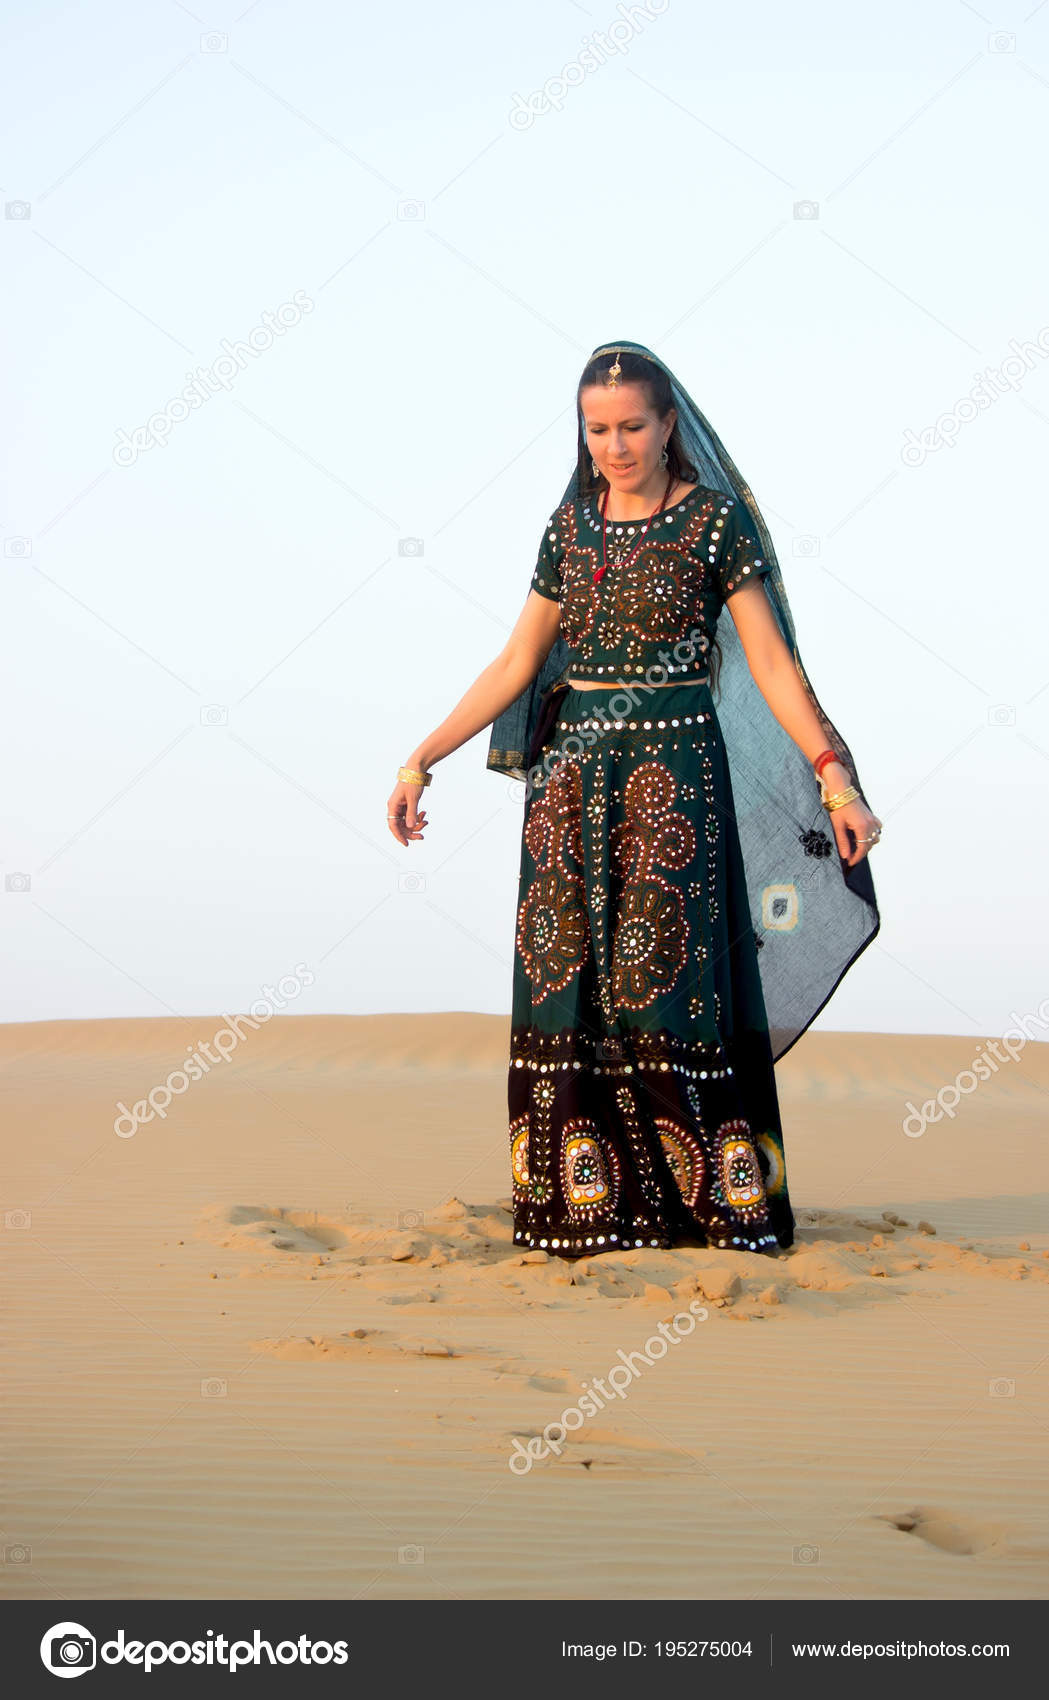 5d23ec1025 A young woman in Indian national clothes looks thoughtfully at the sand,  standing under the setting sun in dunes of the Tar desert. Rajasthan, India.